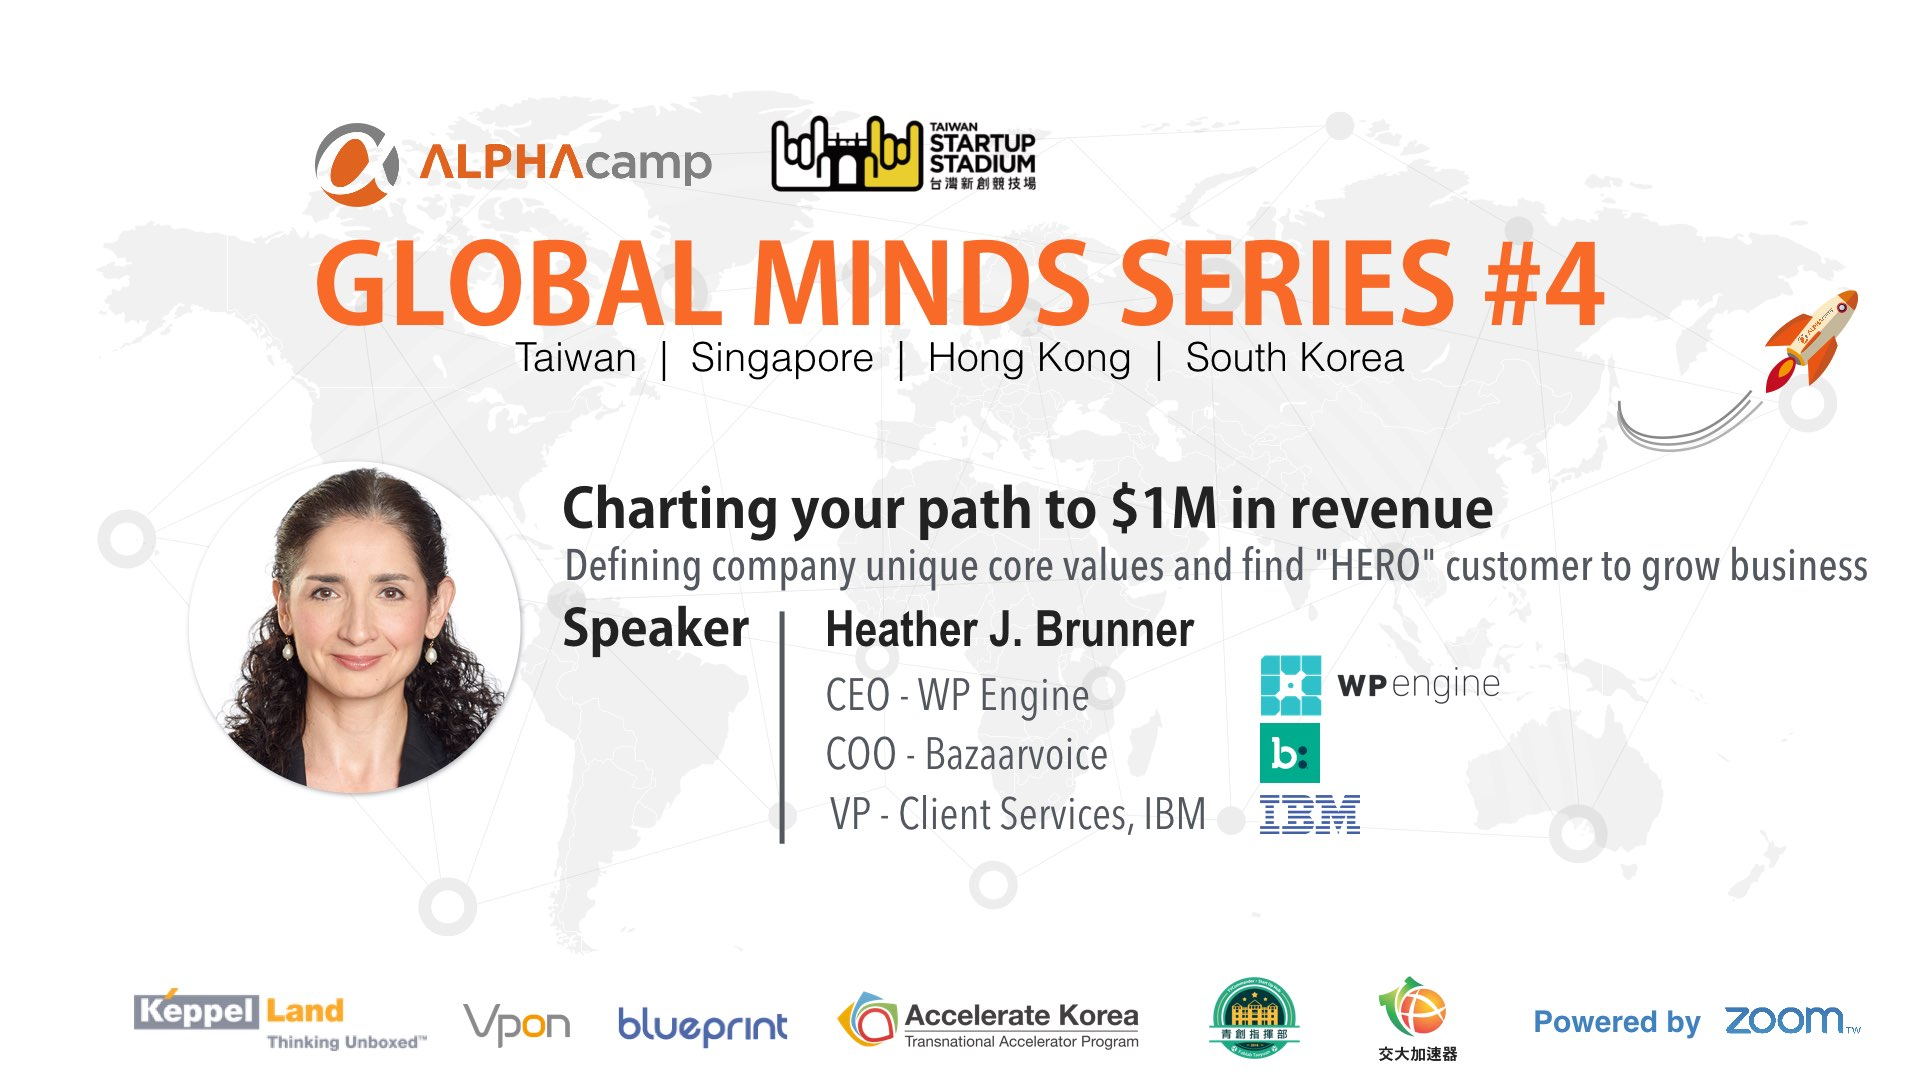 Global minds series 4 hk charting your path to 1m in revenue global minds series 4 hk charting your path to 1m in revenue malvernweather Images